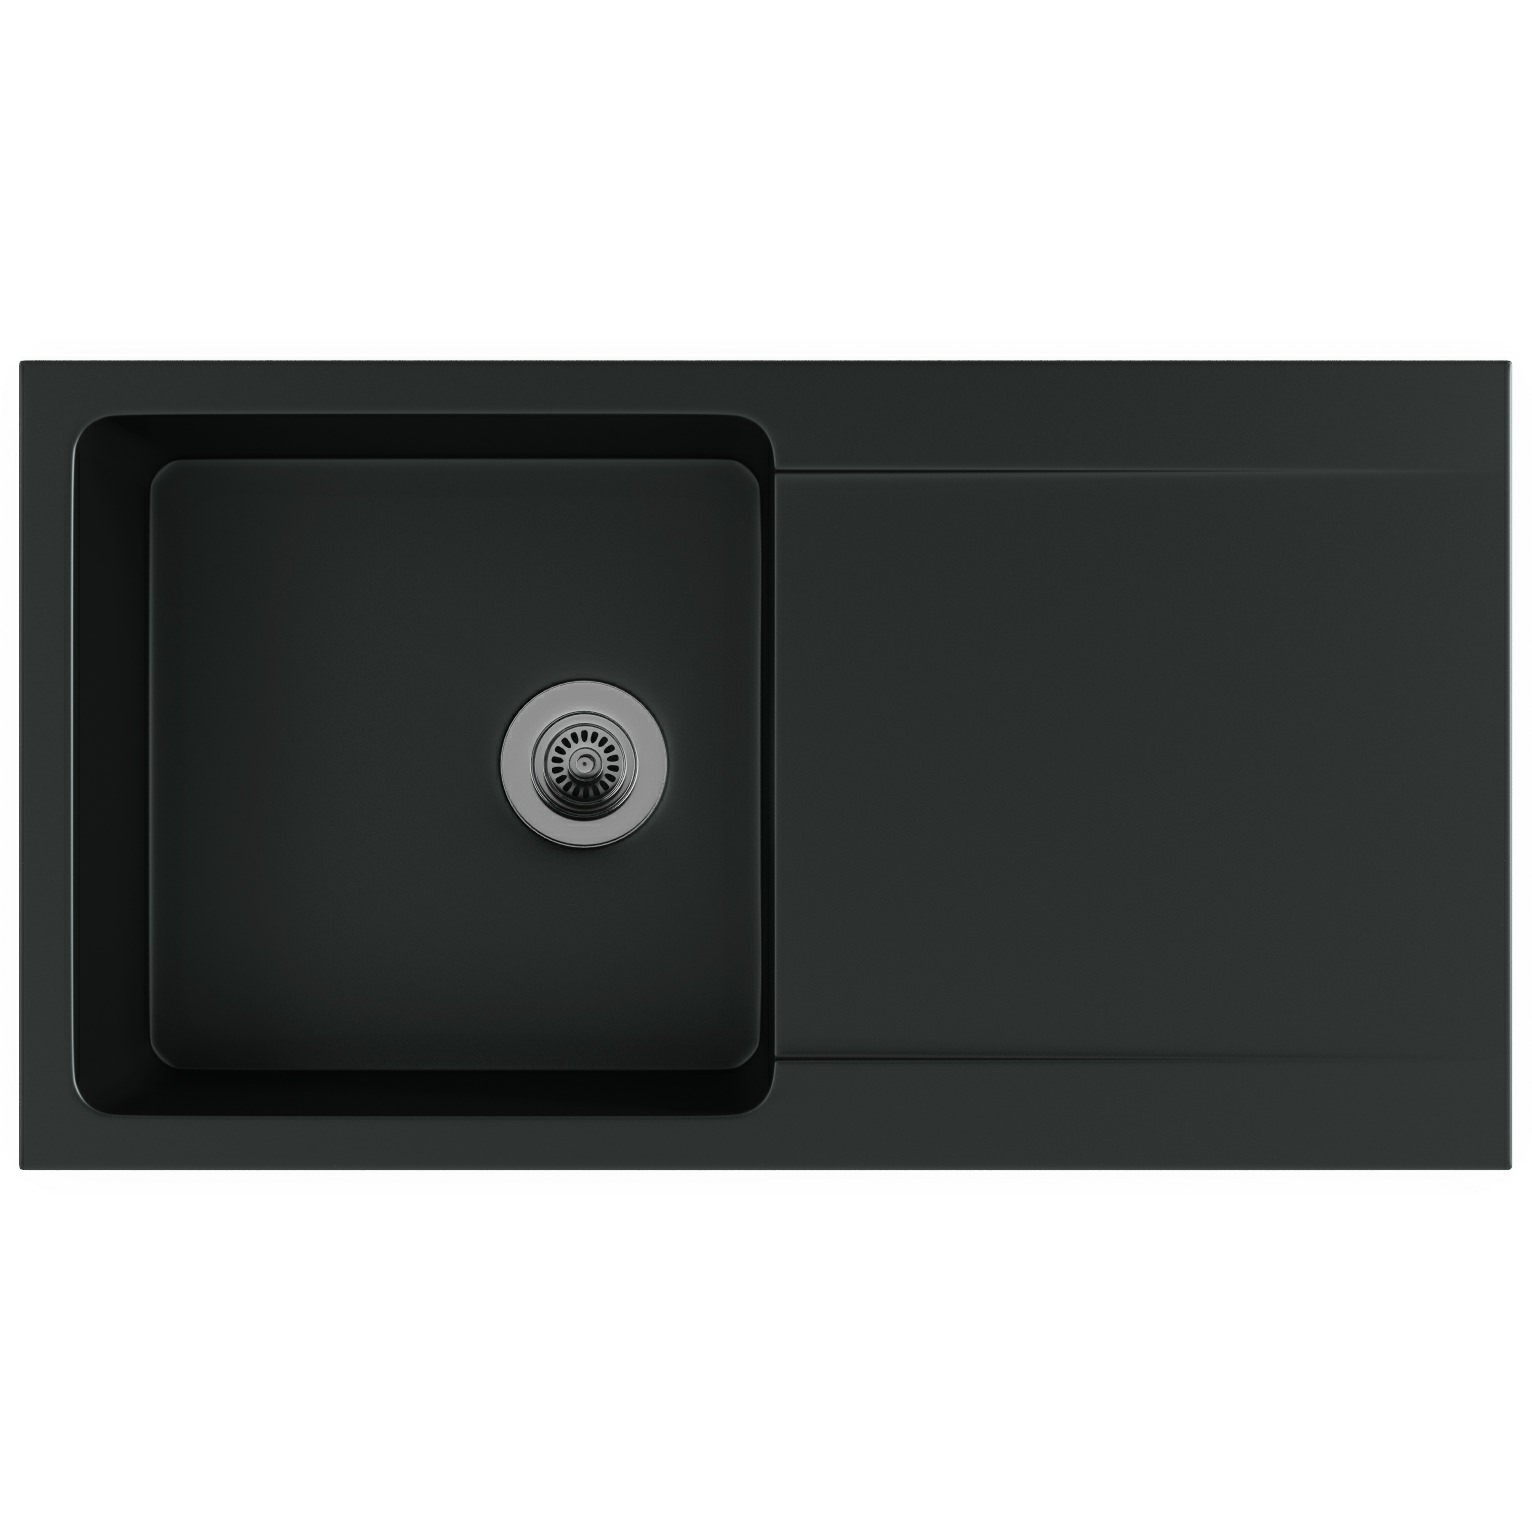 Franke Black Kitchen Sink: Franke Orion OID 611-94 Tectonite Carbon Black 1.0 Bowl